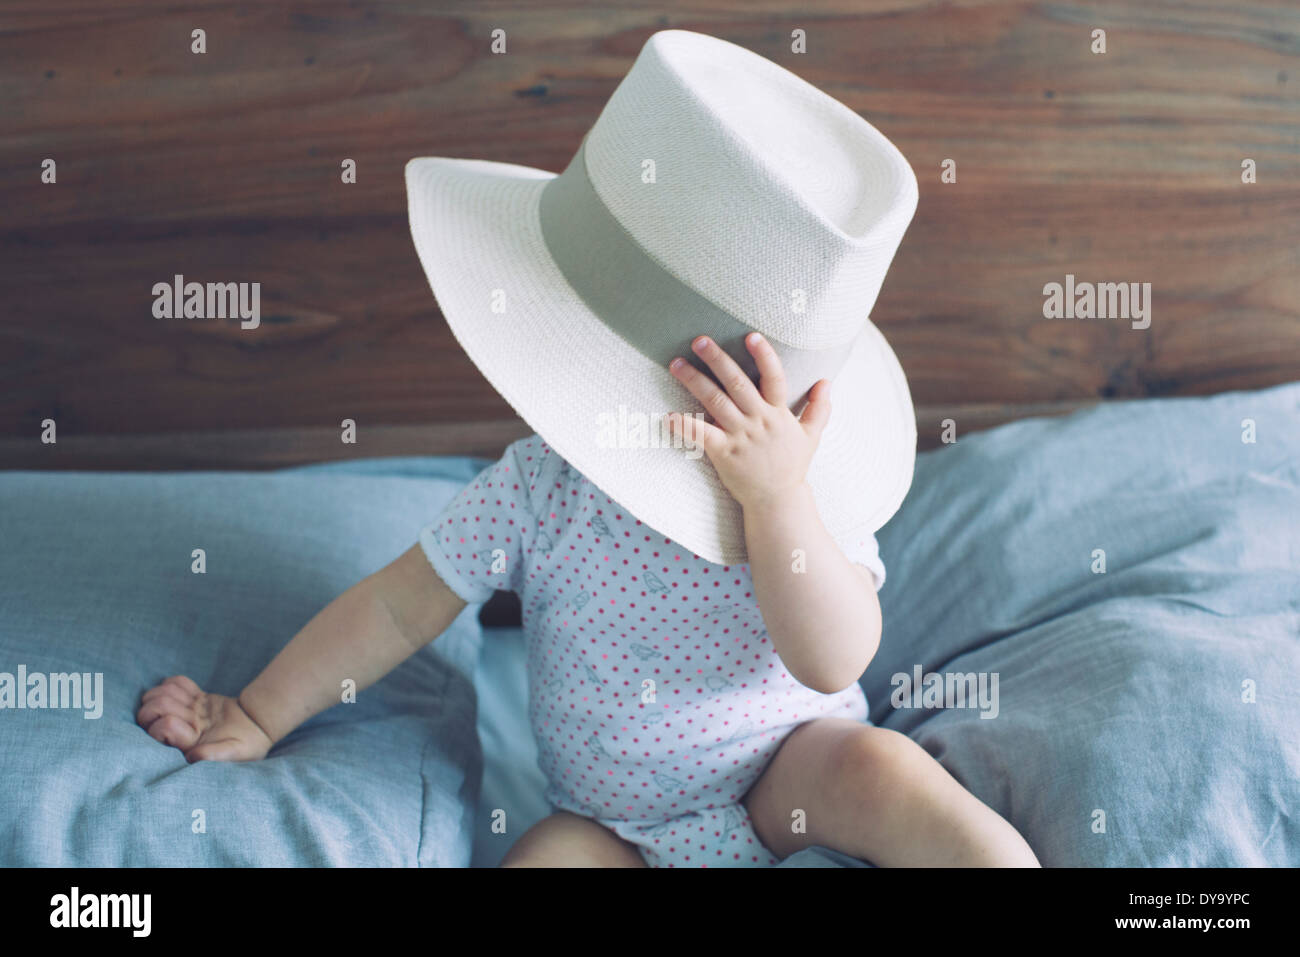 Baby with face obscured by large hat - Stock Image